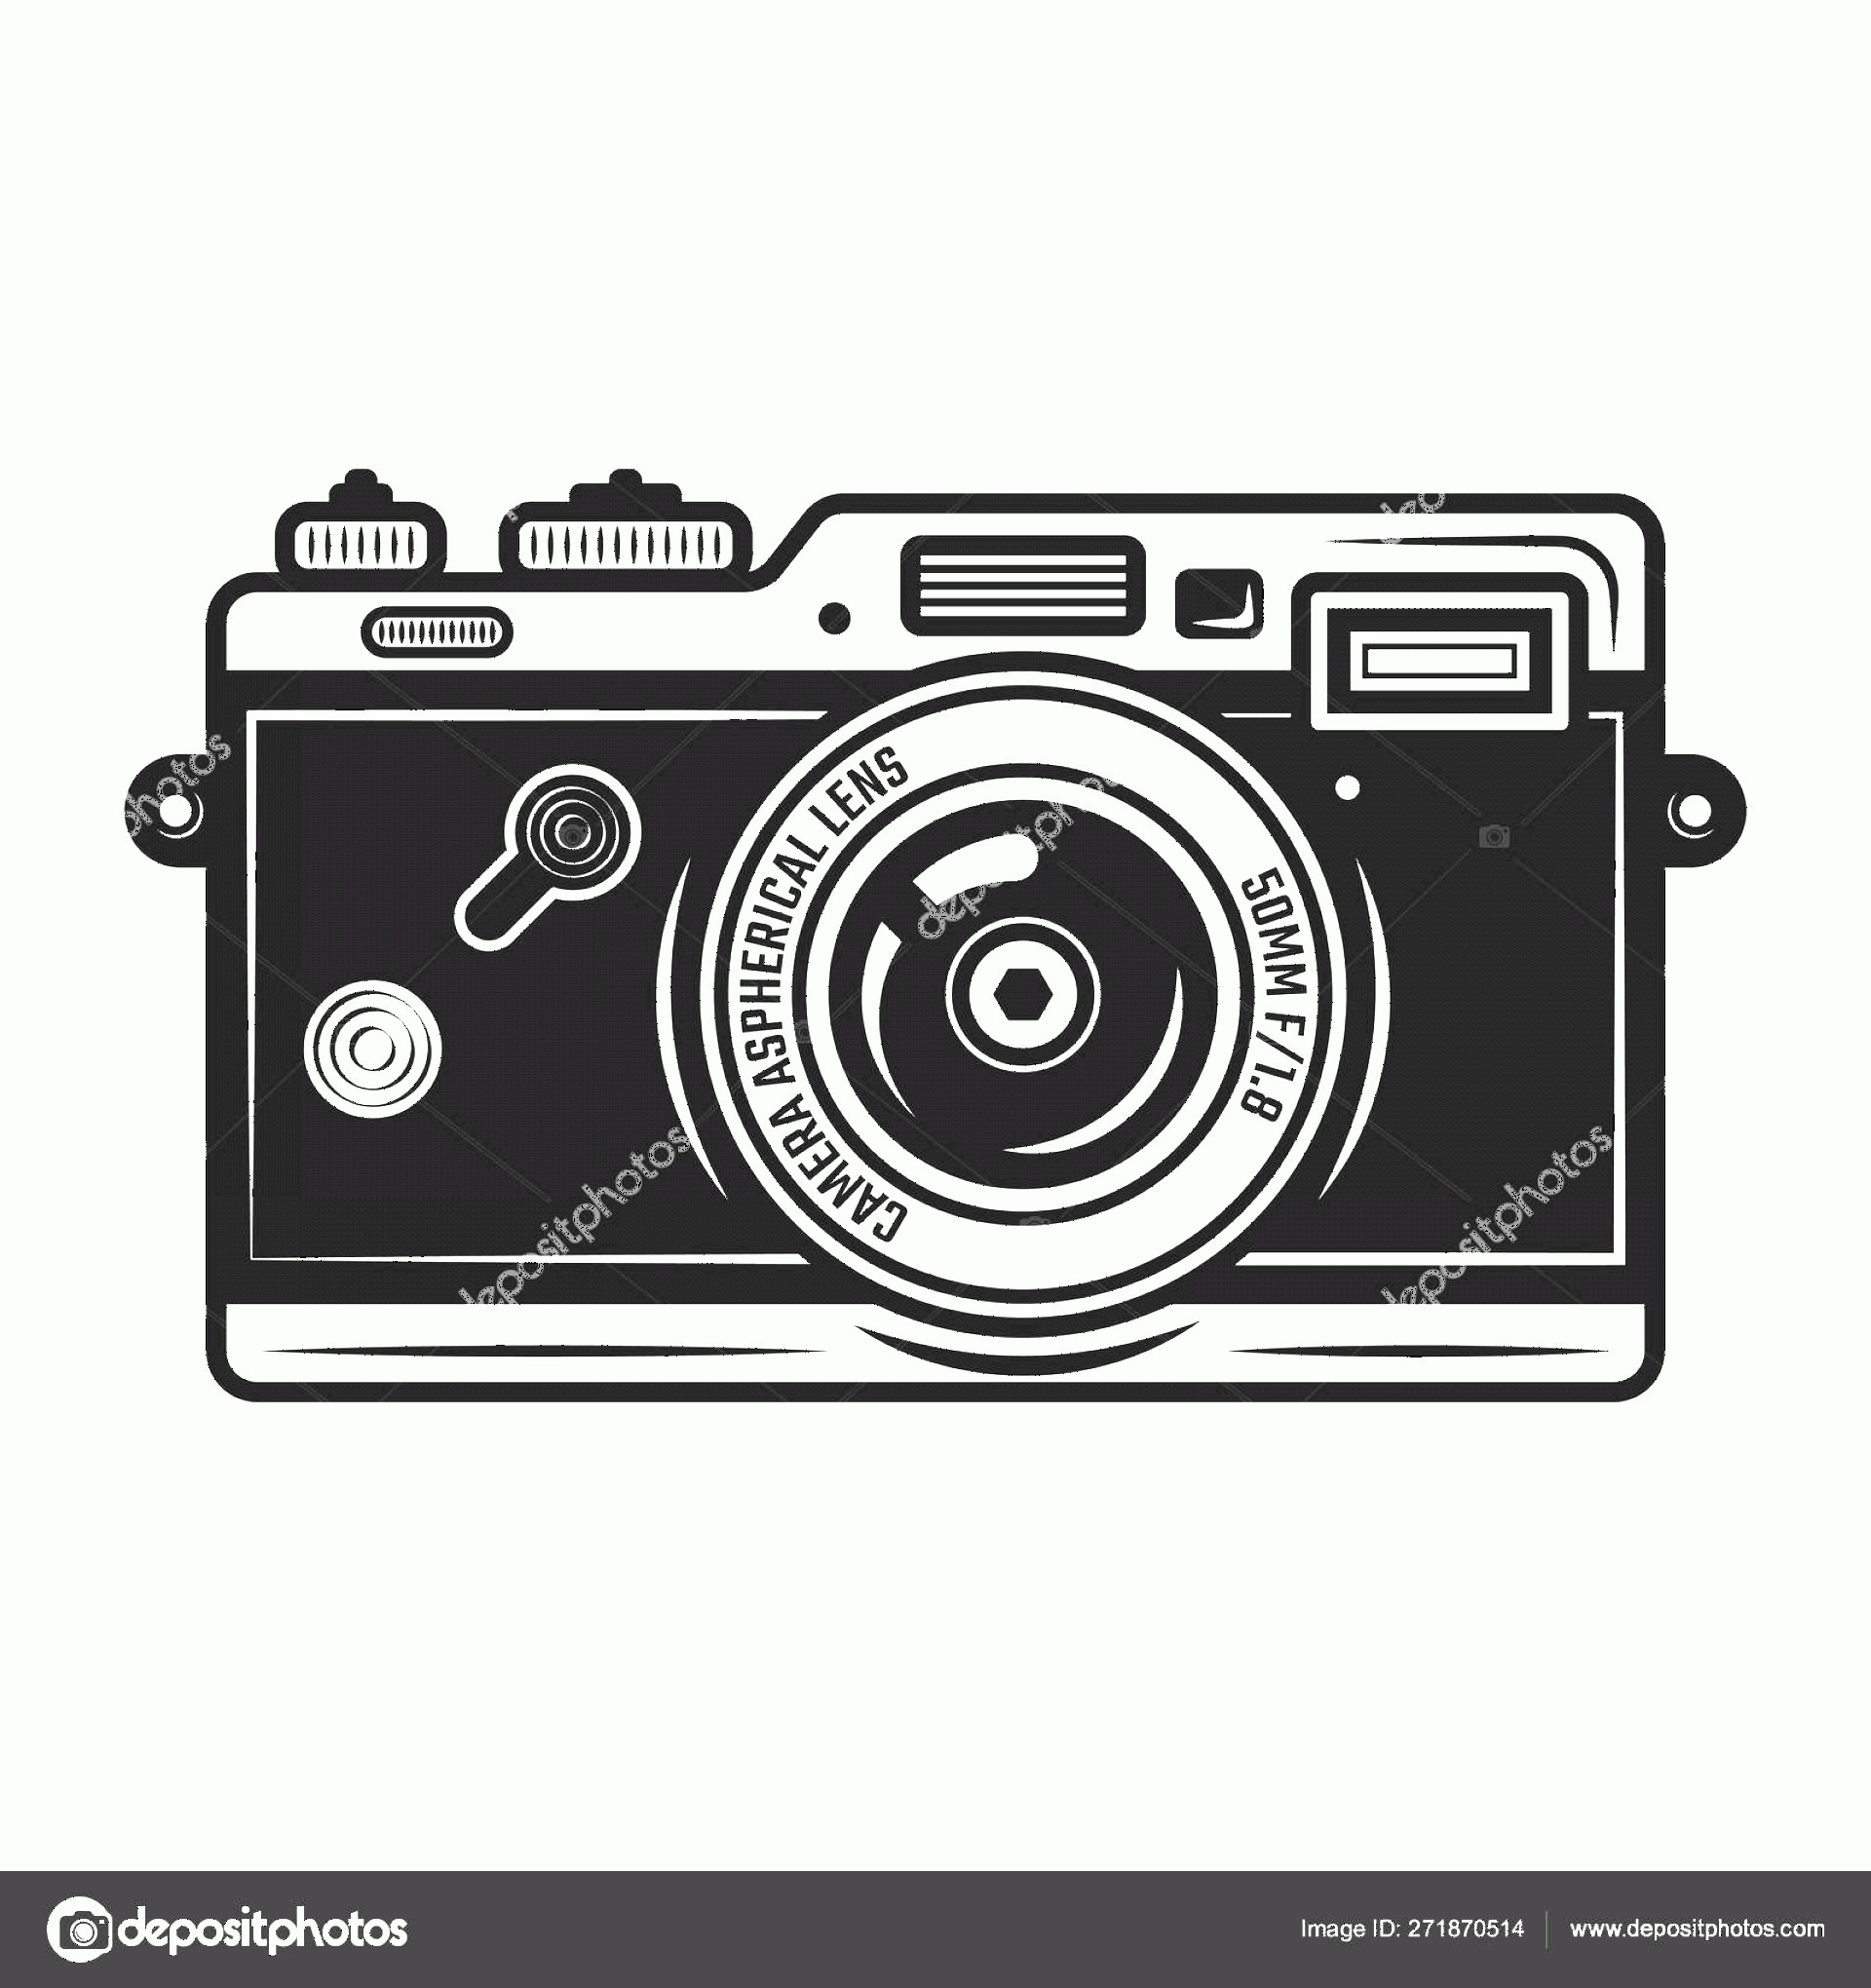 Classic Camera Vector: Stock Illustration Retro Photo Camera Vector Vintage